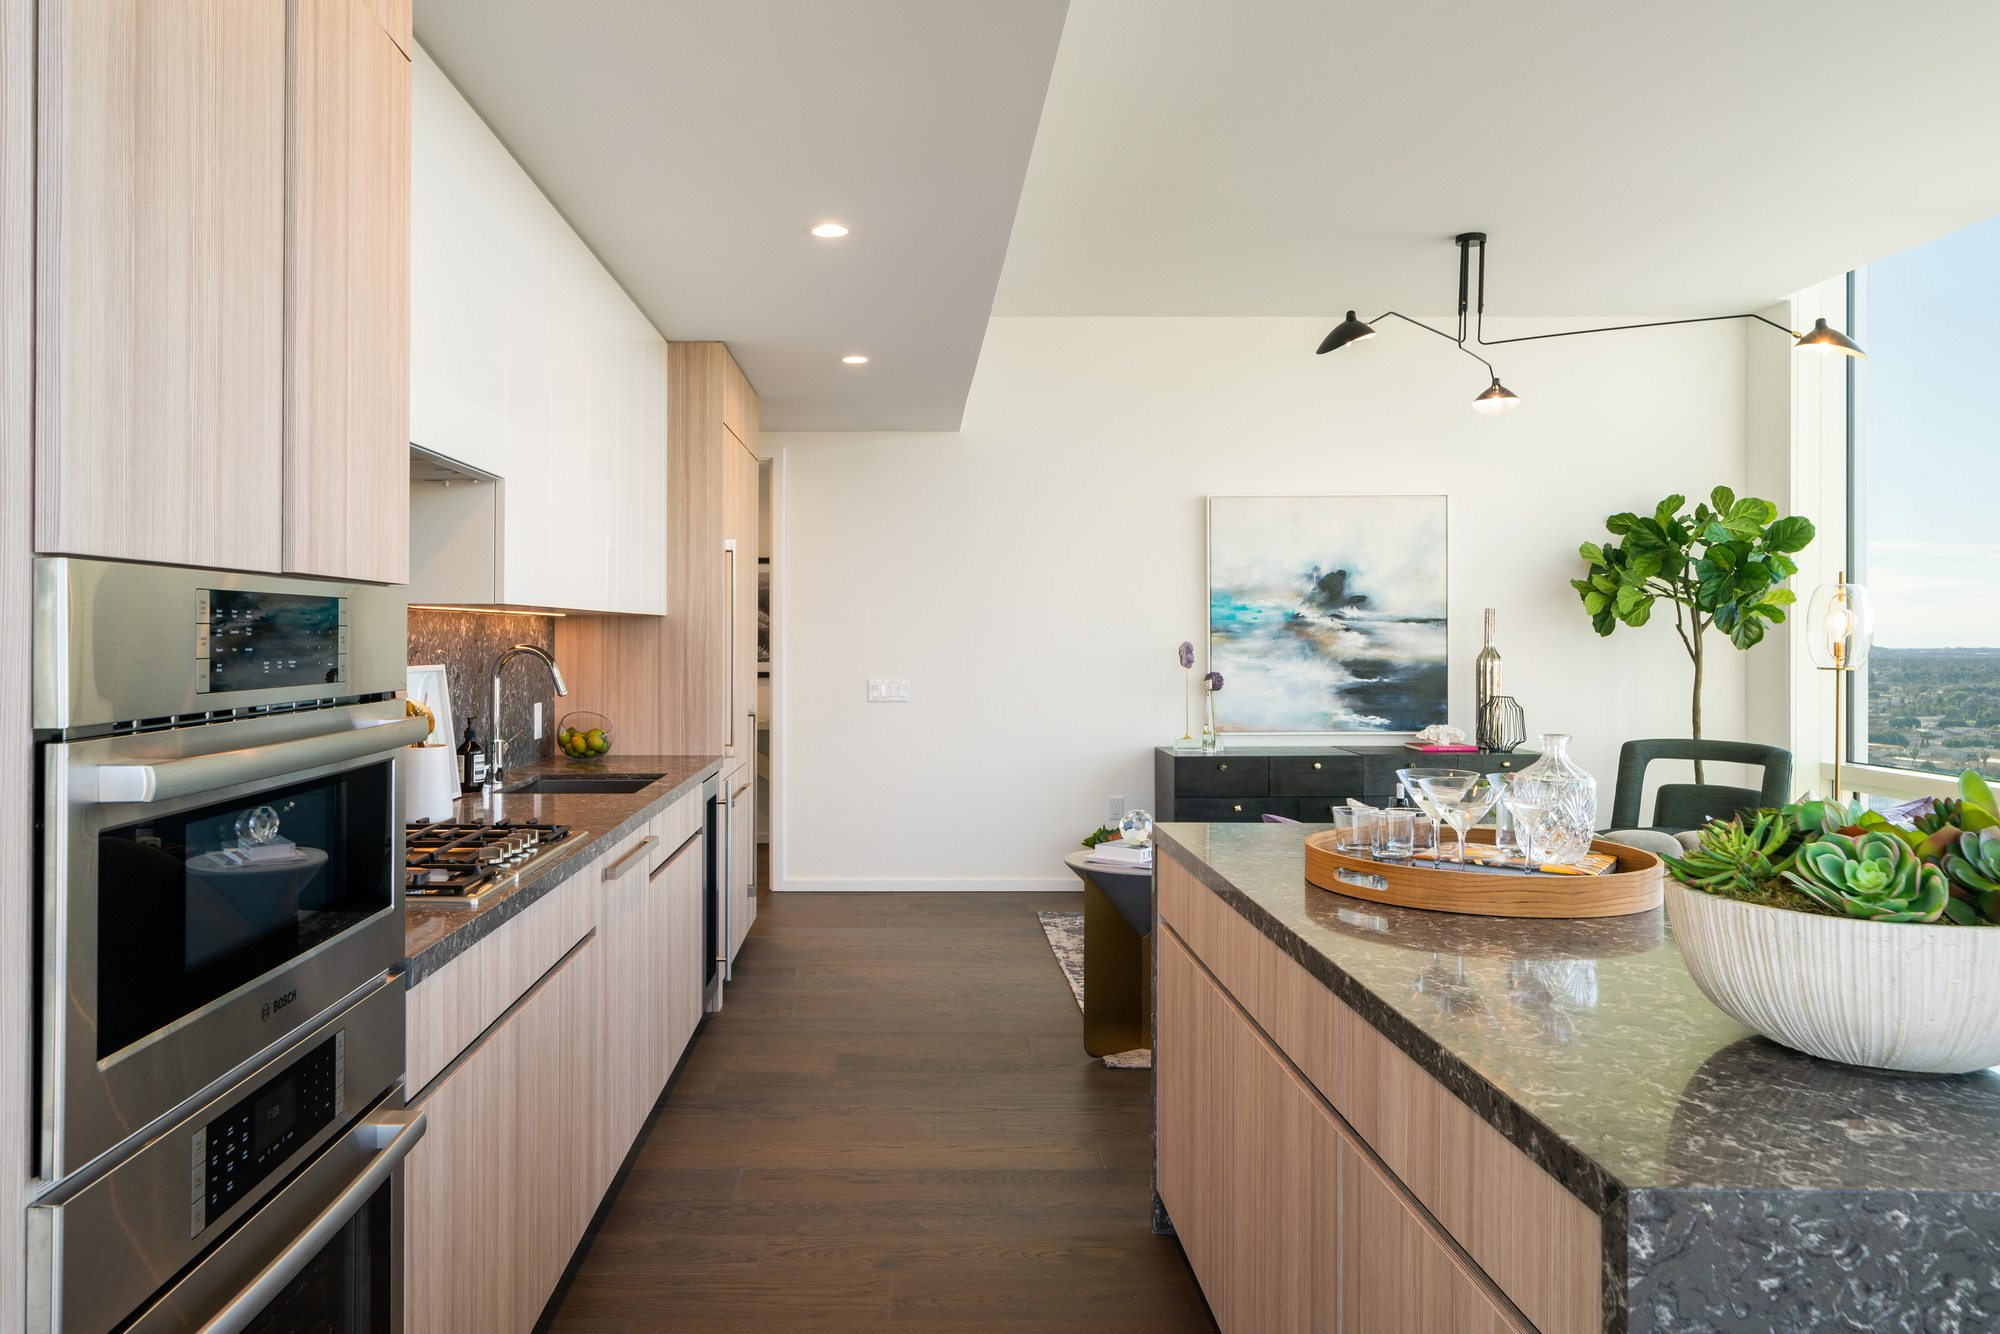 Downtown Los Angeles Residences - THEA at Metropolis Open Kitchen with Island, Stainless Steel Appliances, and High-End Finishes